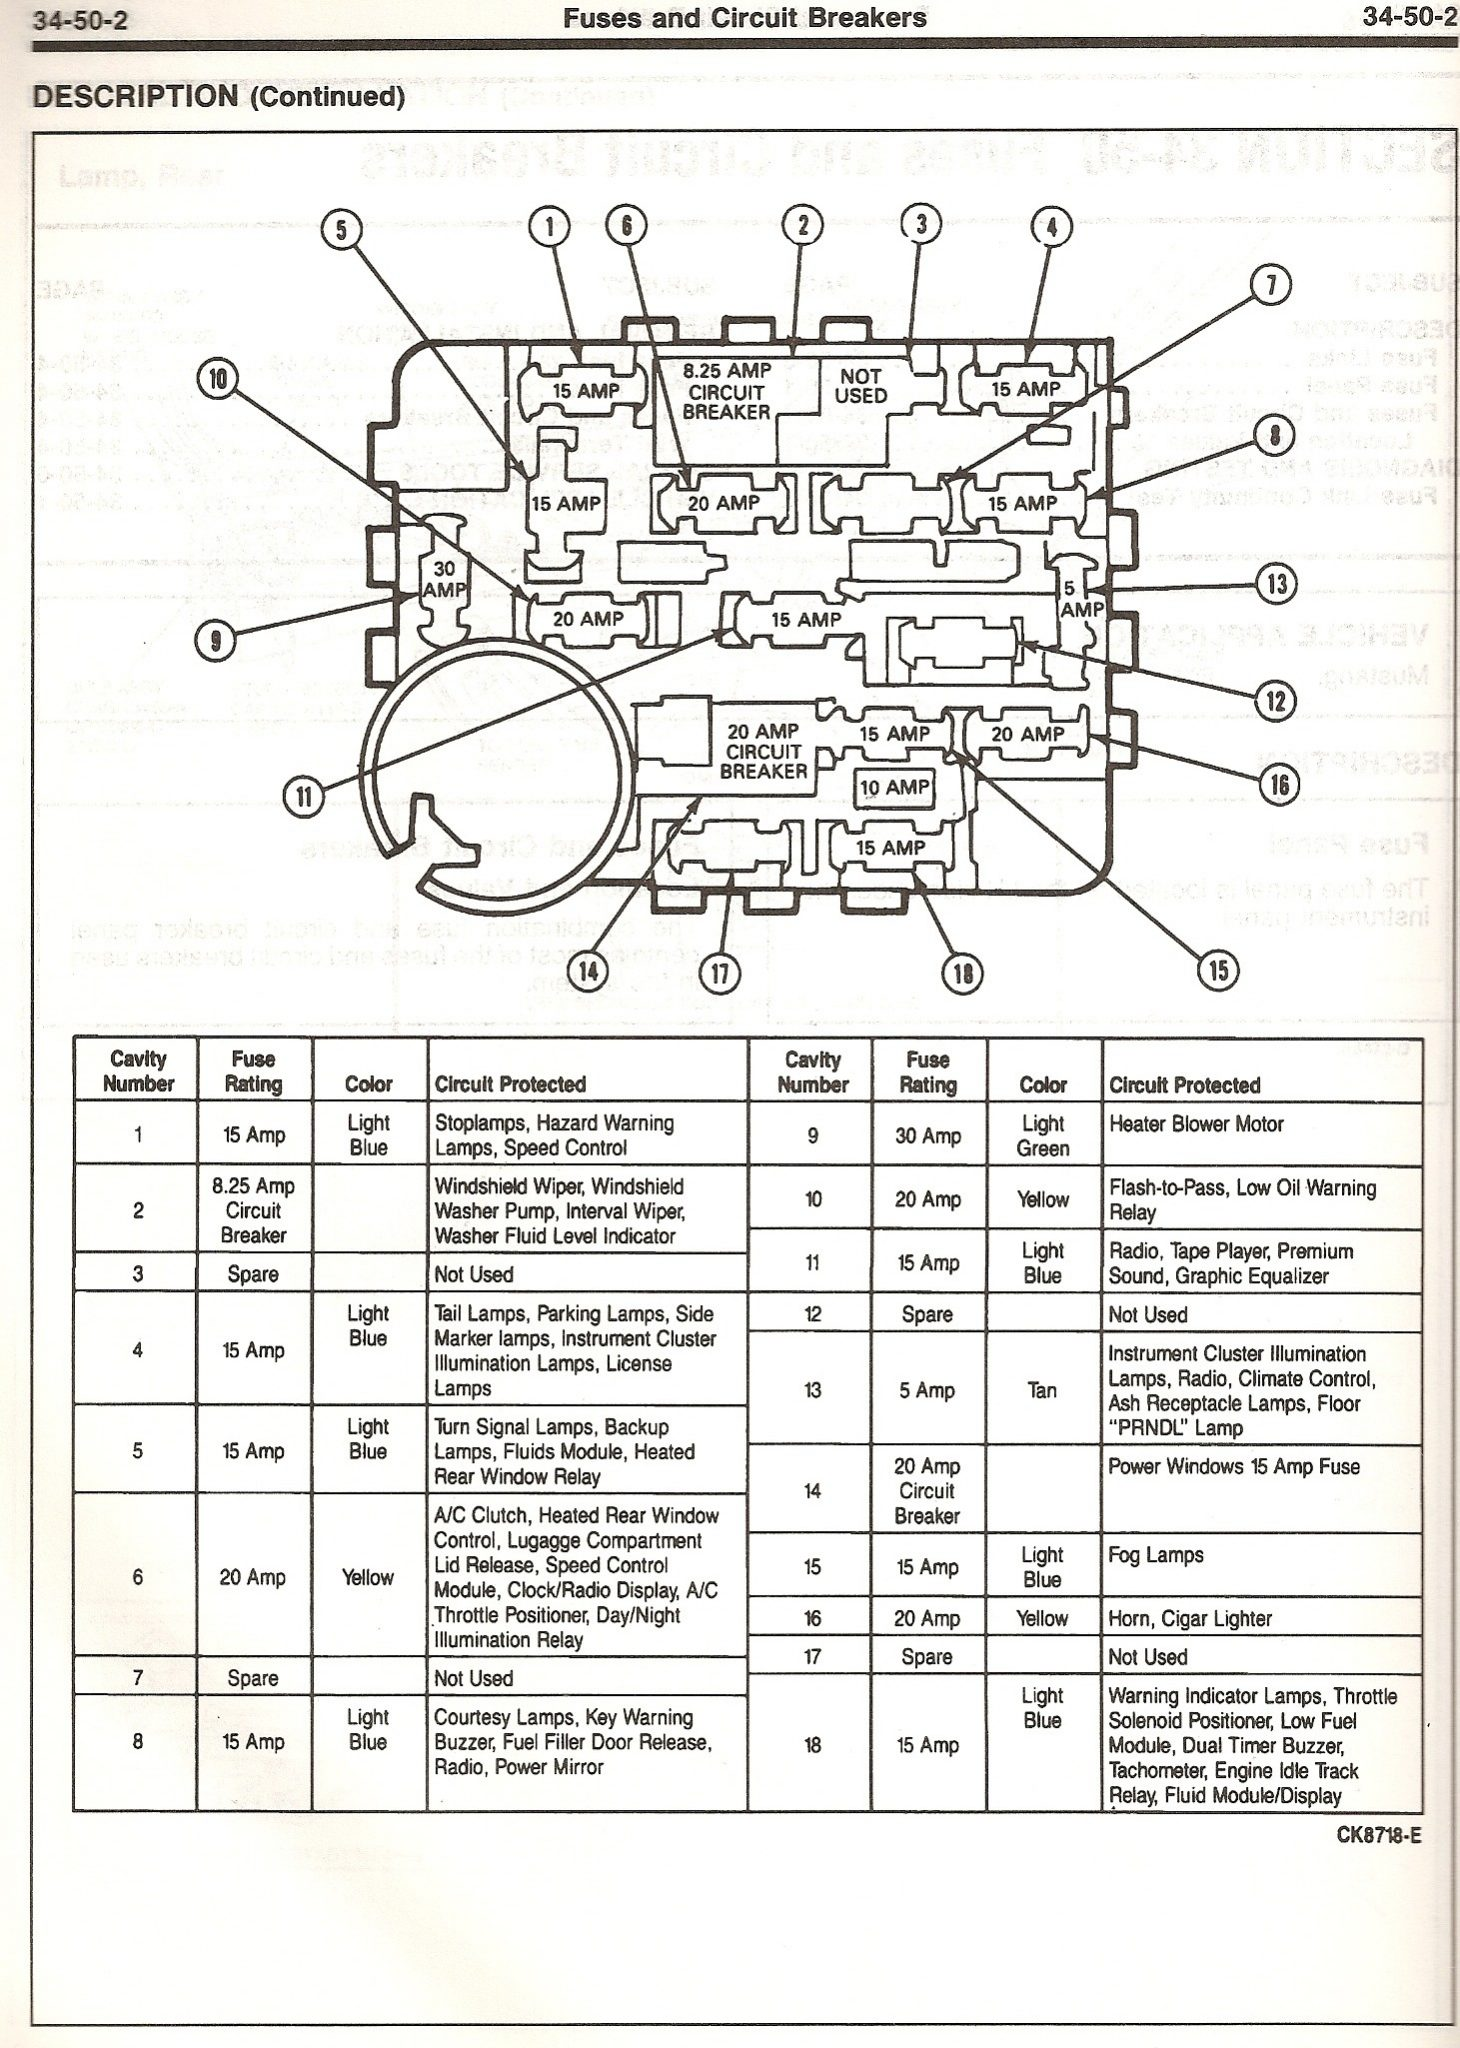 2007 Crown Vic Wiring Diagram Electrical Diagrams 2001 Victoria Radio 1990 Ford Fairmont Fuse